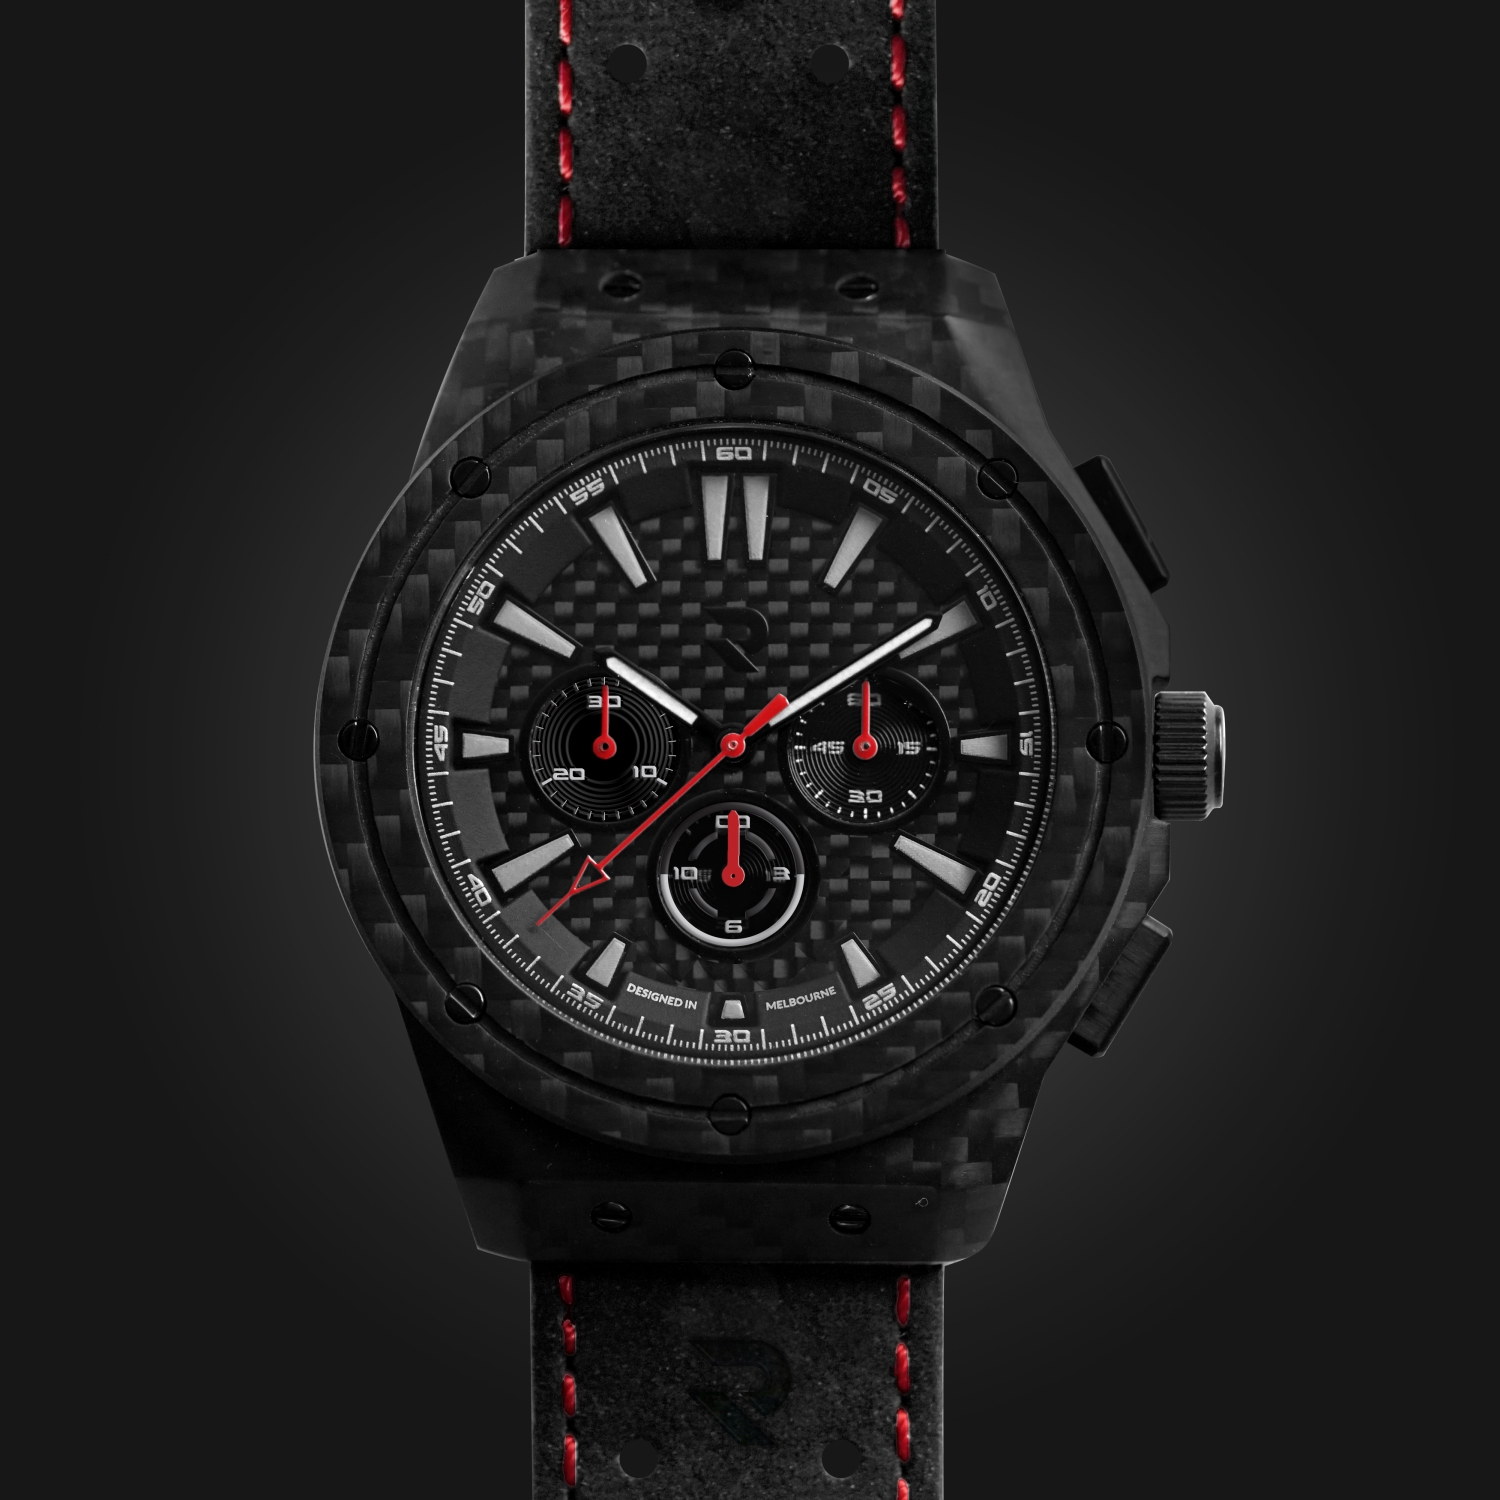 titanium composite carbon the introducing watches elemental and ceramic vilhelm for